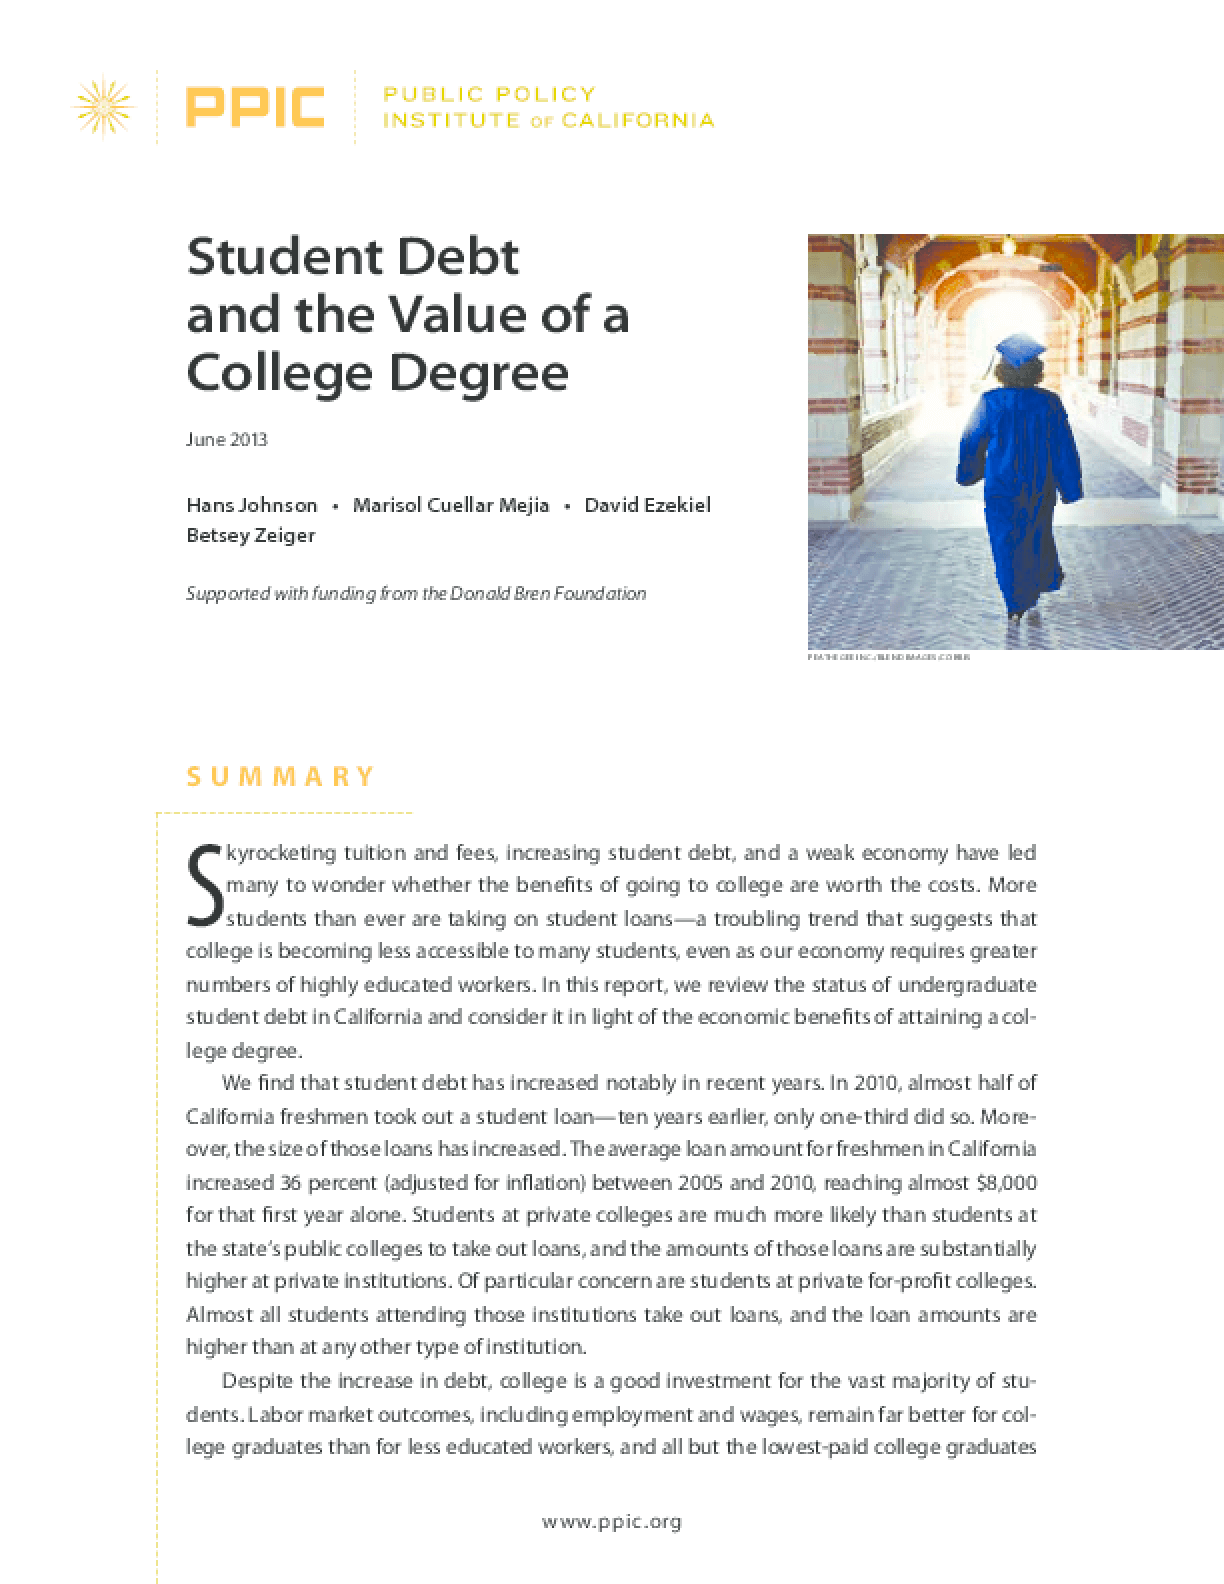 Student Debt and the Value of a College Degree